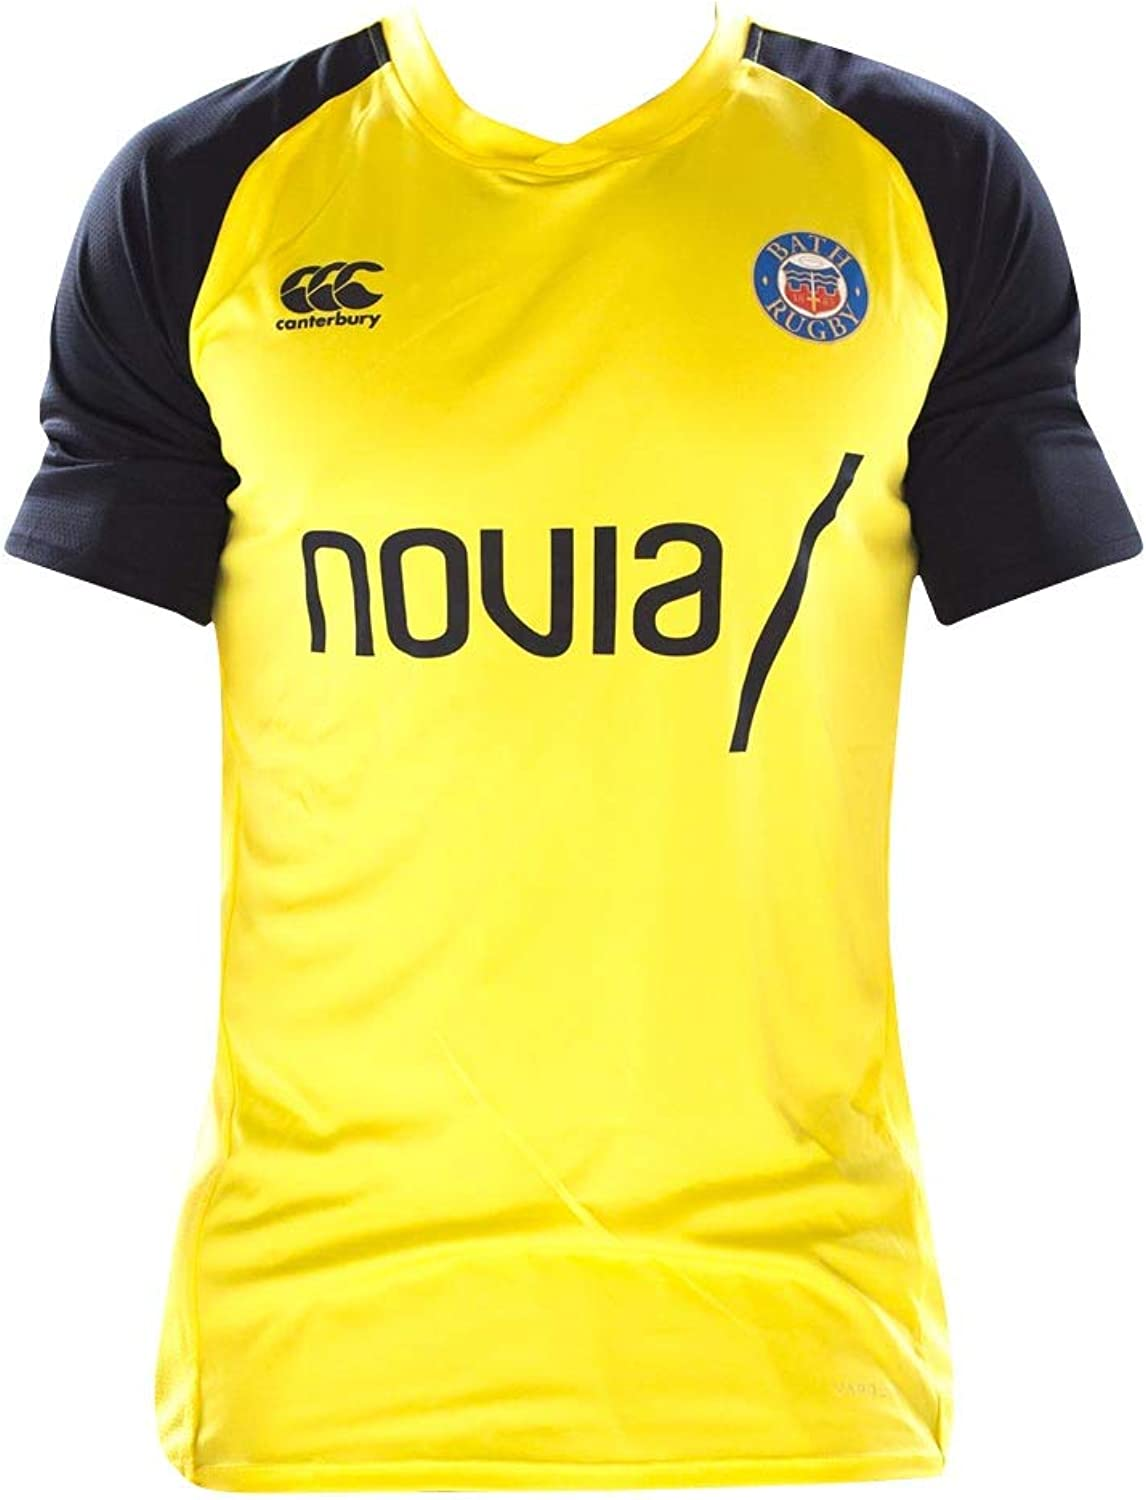 Canterbury 2018-2019 Bath Rugby Rugby Rugby Vapordri Poly Superlight Tee (Gelb) B07GFW8P46  Moderate Kosten 52e0ad